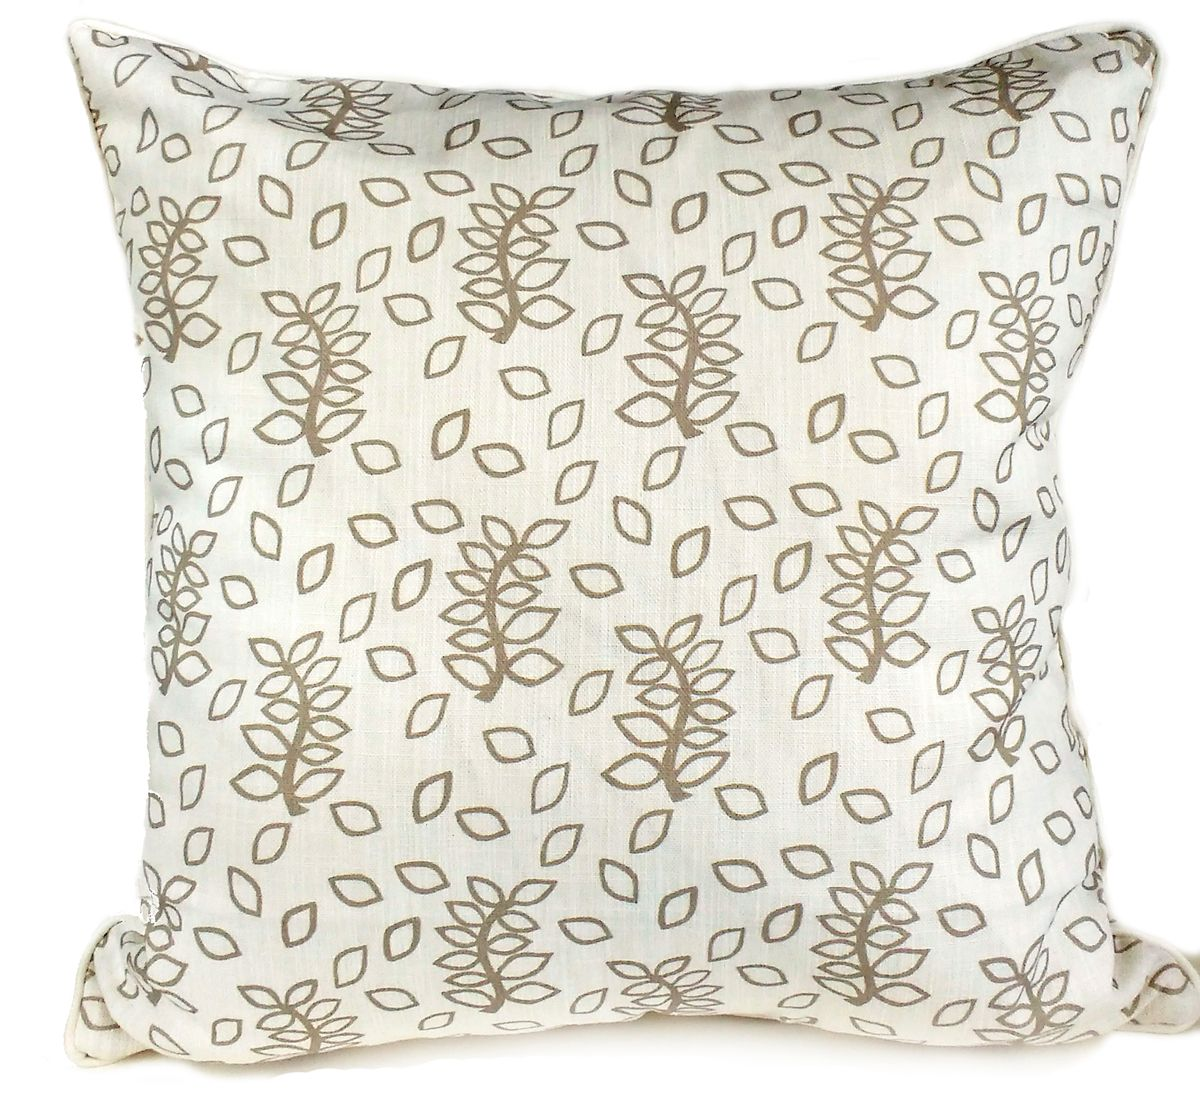 Handmade cushion in ivory leaves design